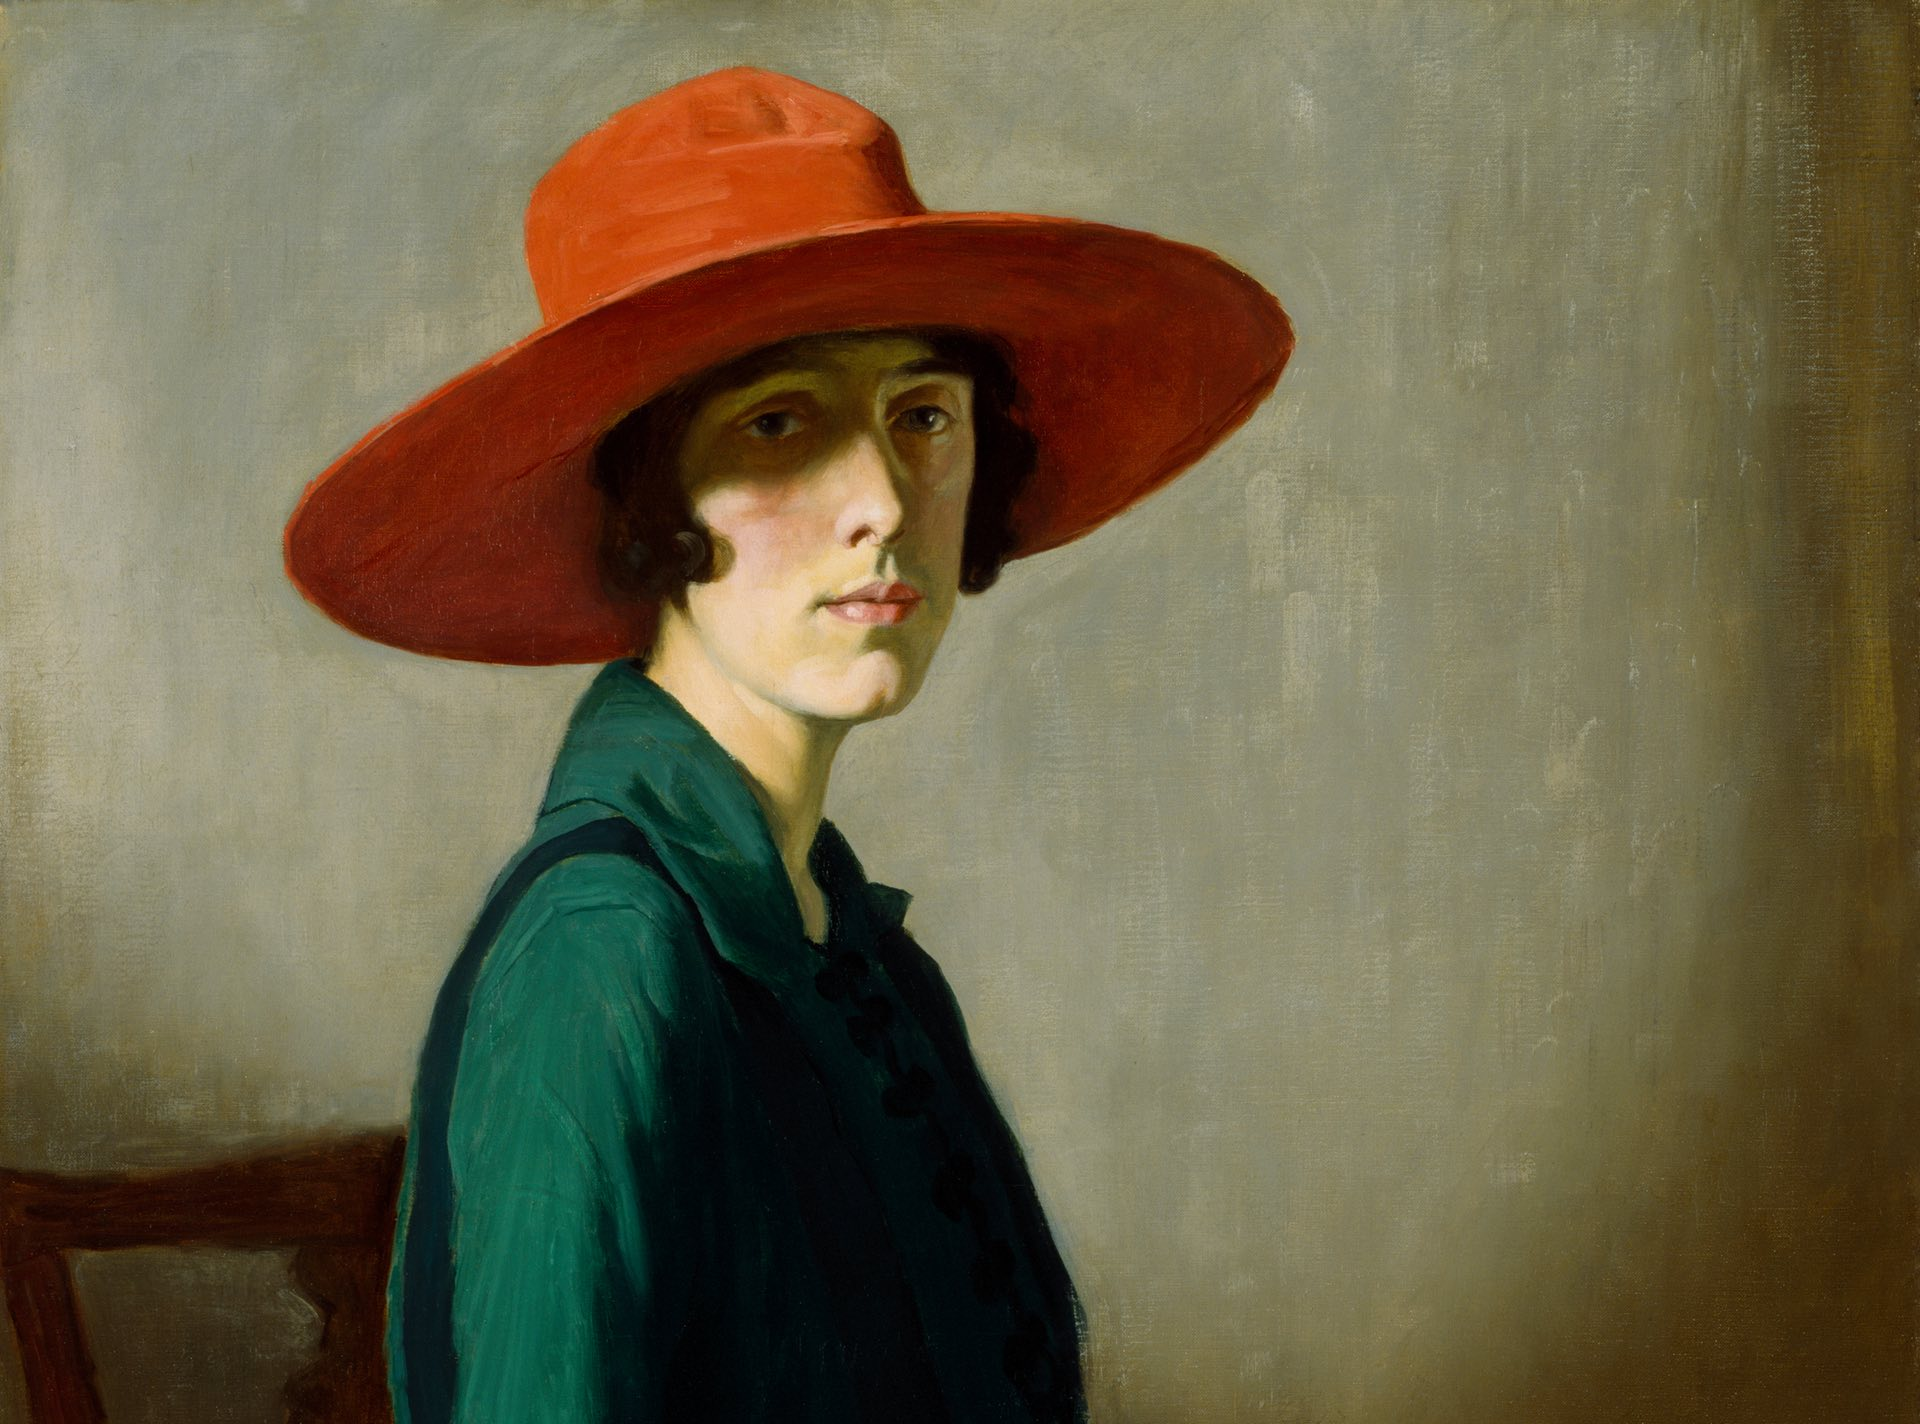 Lady With a Red Hat, 1918, by William Strang. Photograph: Glasgow Museums and Libraries Collections